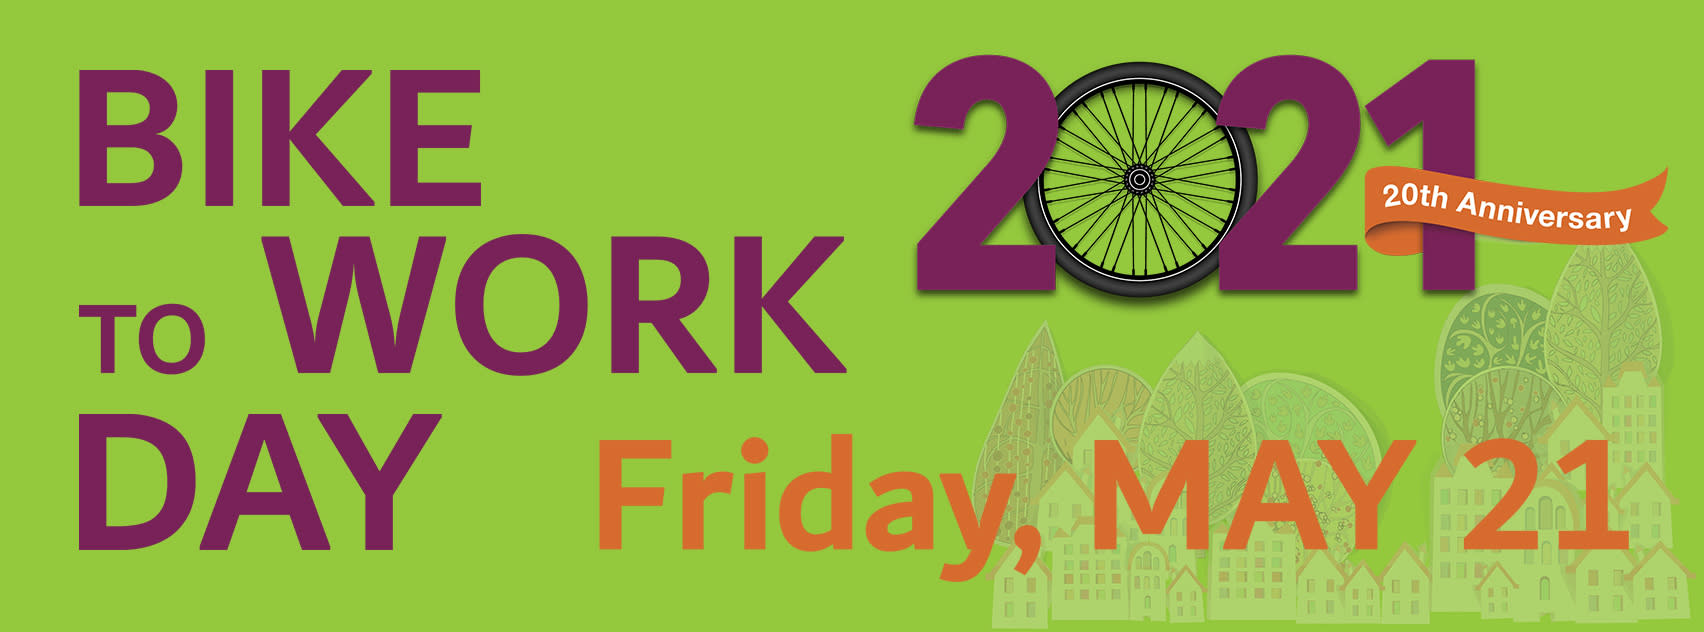 May be an image of food, bicycle and text that says 'BIKE TO WORK 2021 20th Anniversary DAY Friday, MAY 21'